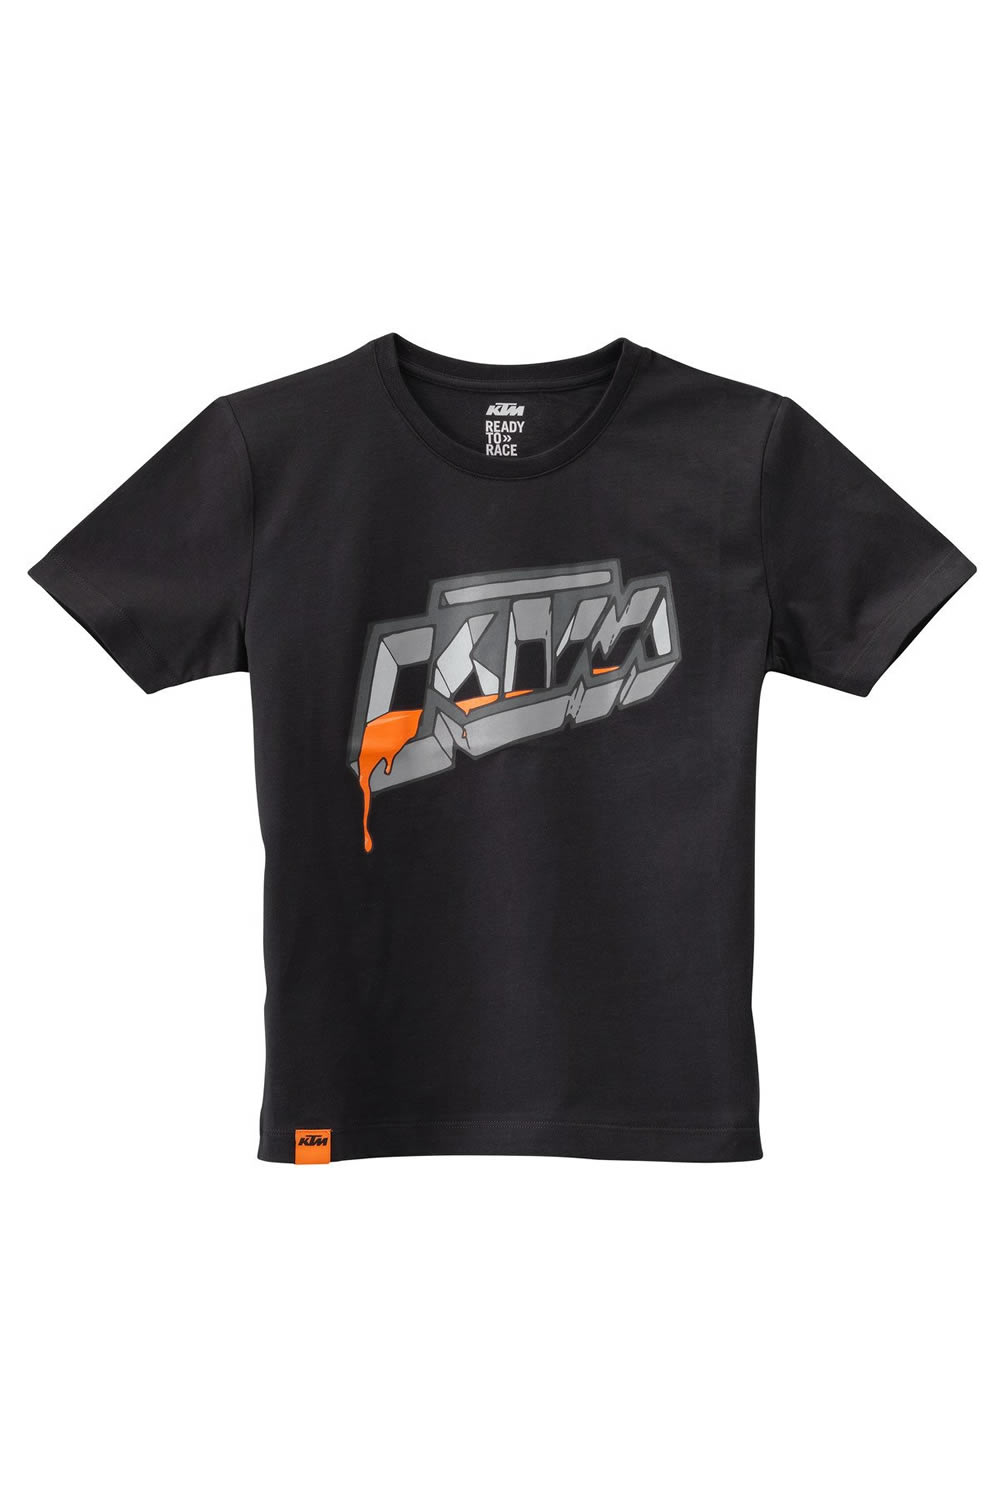 Remera Kids Sprayer Tee 0